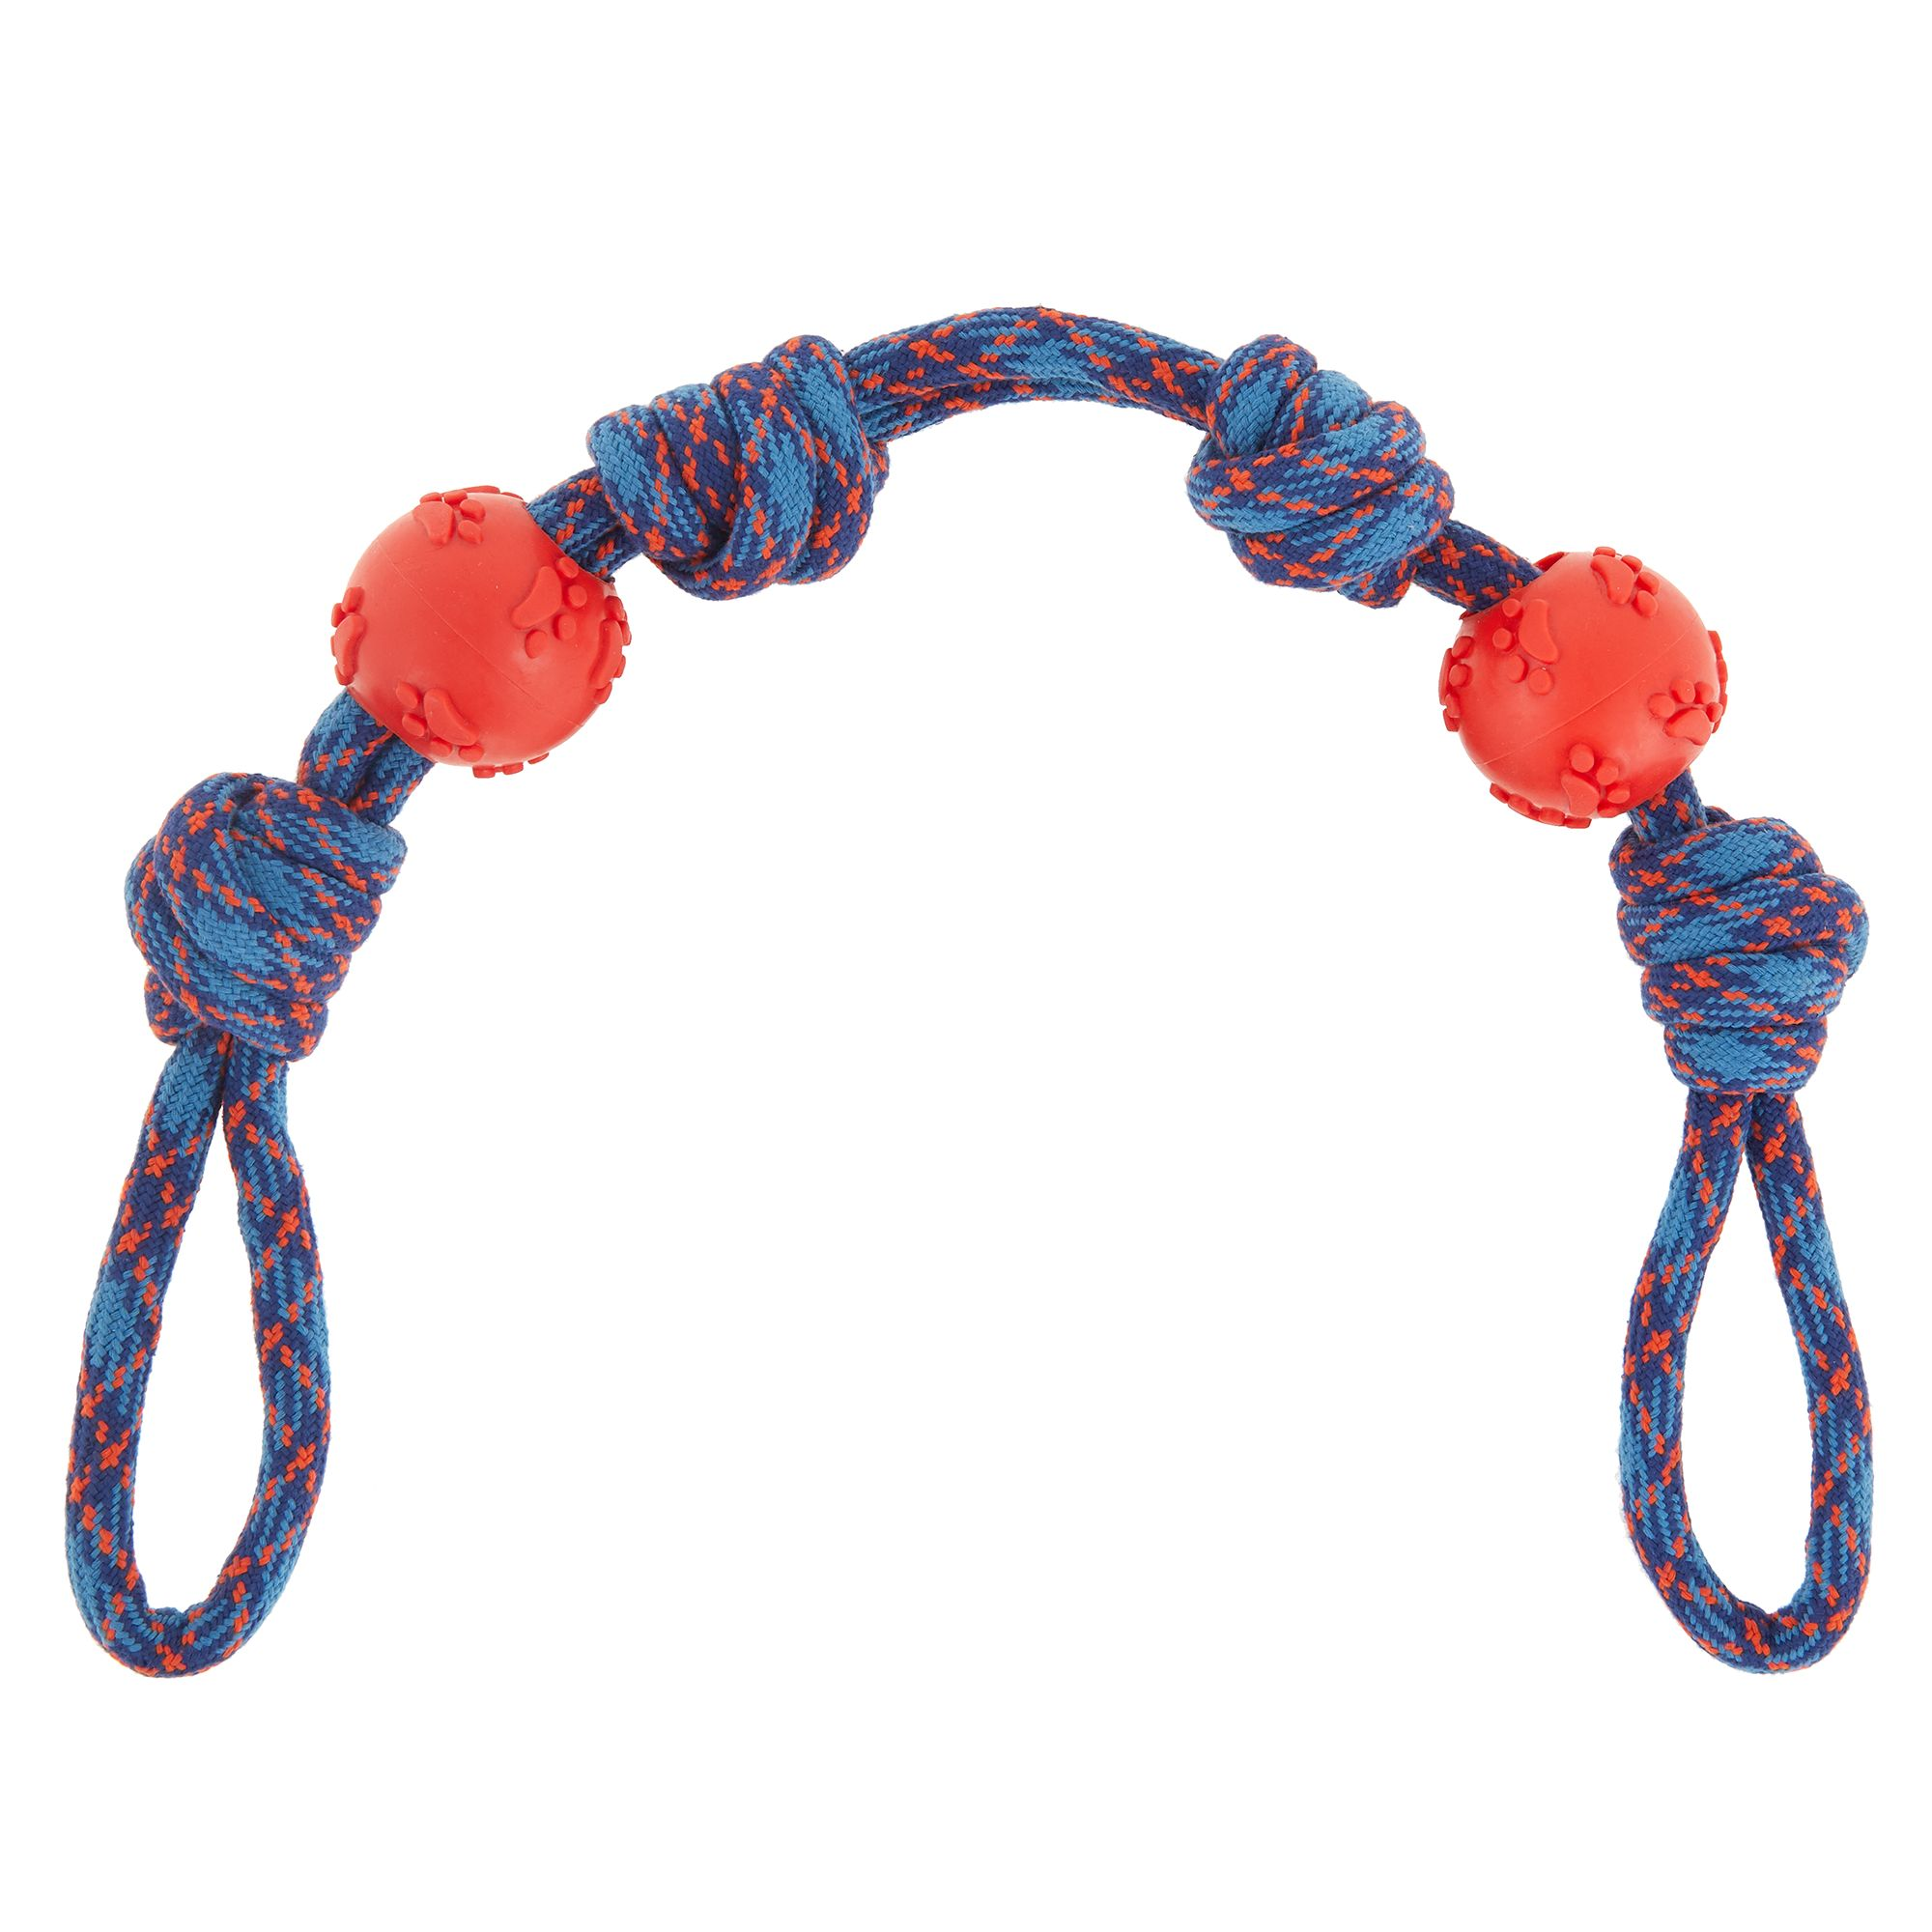 Top Paw 4 Knot Rope with 2 TPR Ball Dog Toy